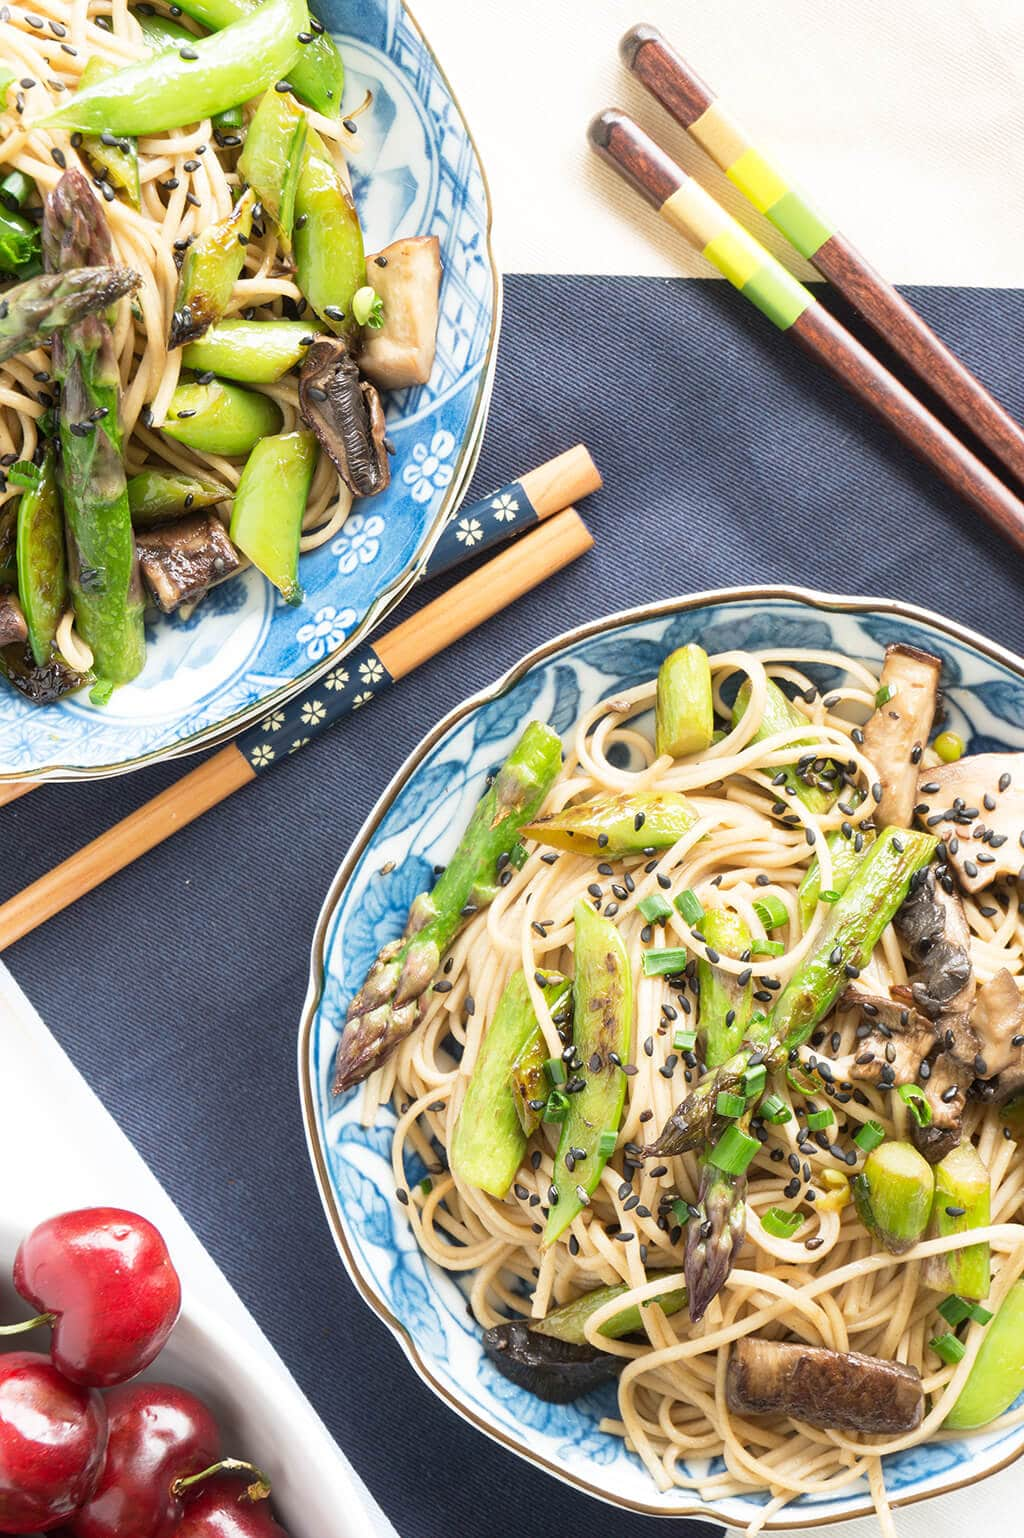 5 Minute Sesame Noodle Bowl with Spring Veggies. This super fast and healthy veggie bowl is light and fresh for spring featuring asparagus, snap peas and mushrooms tossed with a sesame-soy dressing. | VEGETARIAN | QUICK | LUNCH | ASIAN | NOODLES | Recipe at OatandSesame.com